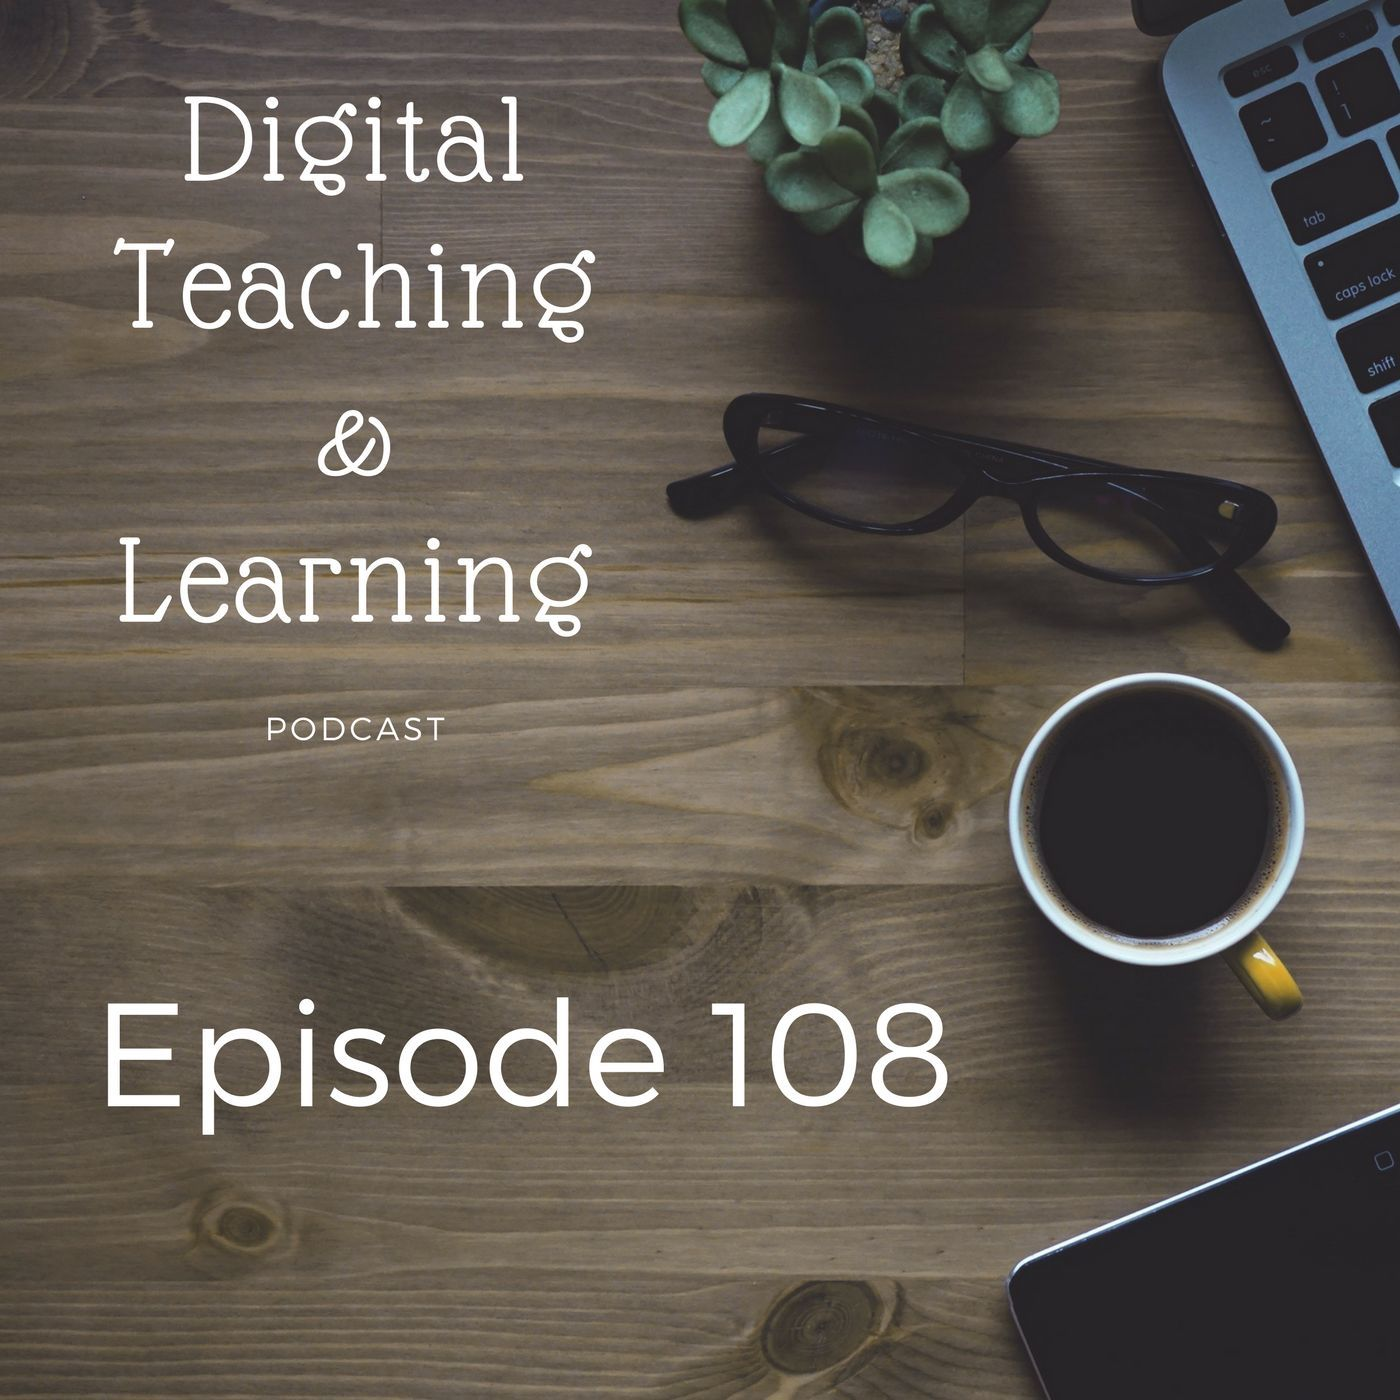 Episode 108 - Reflection, an Essential Tool for Educators